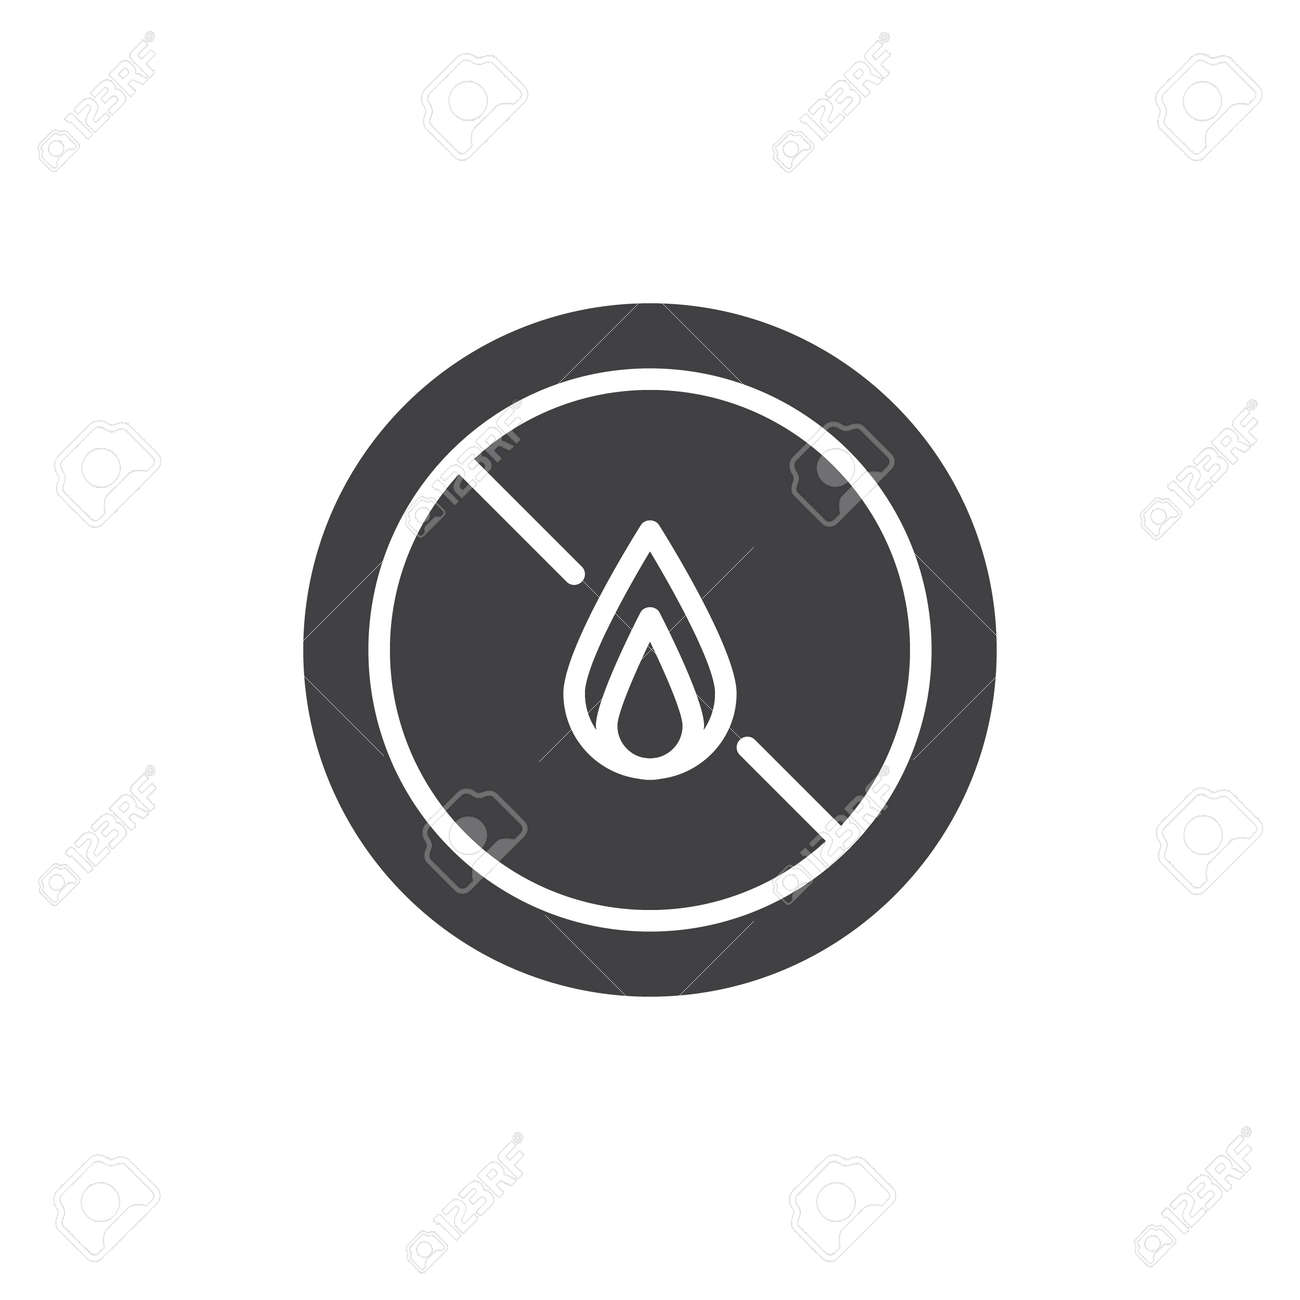 No Expose Flammable Liquids Icon Vector Filled Flat Sign Solid